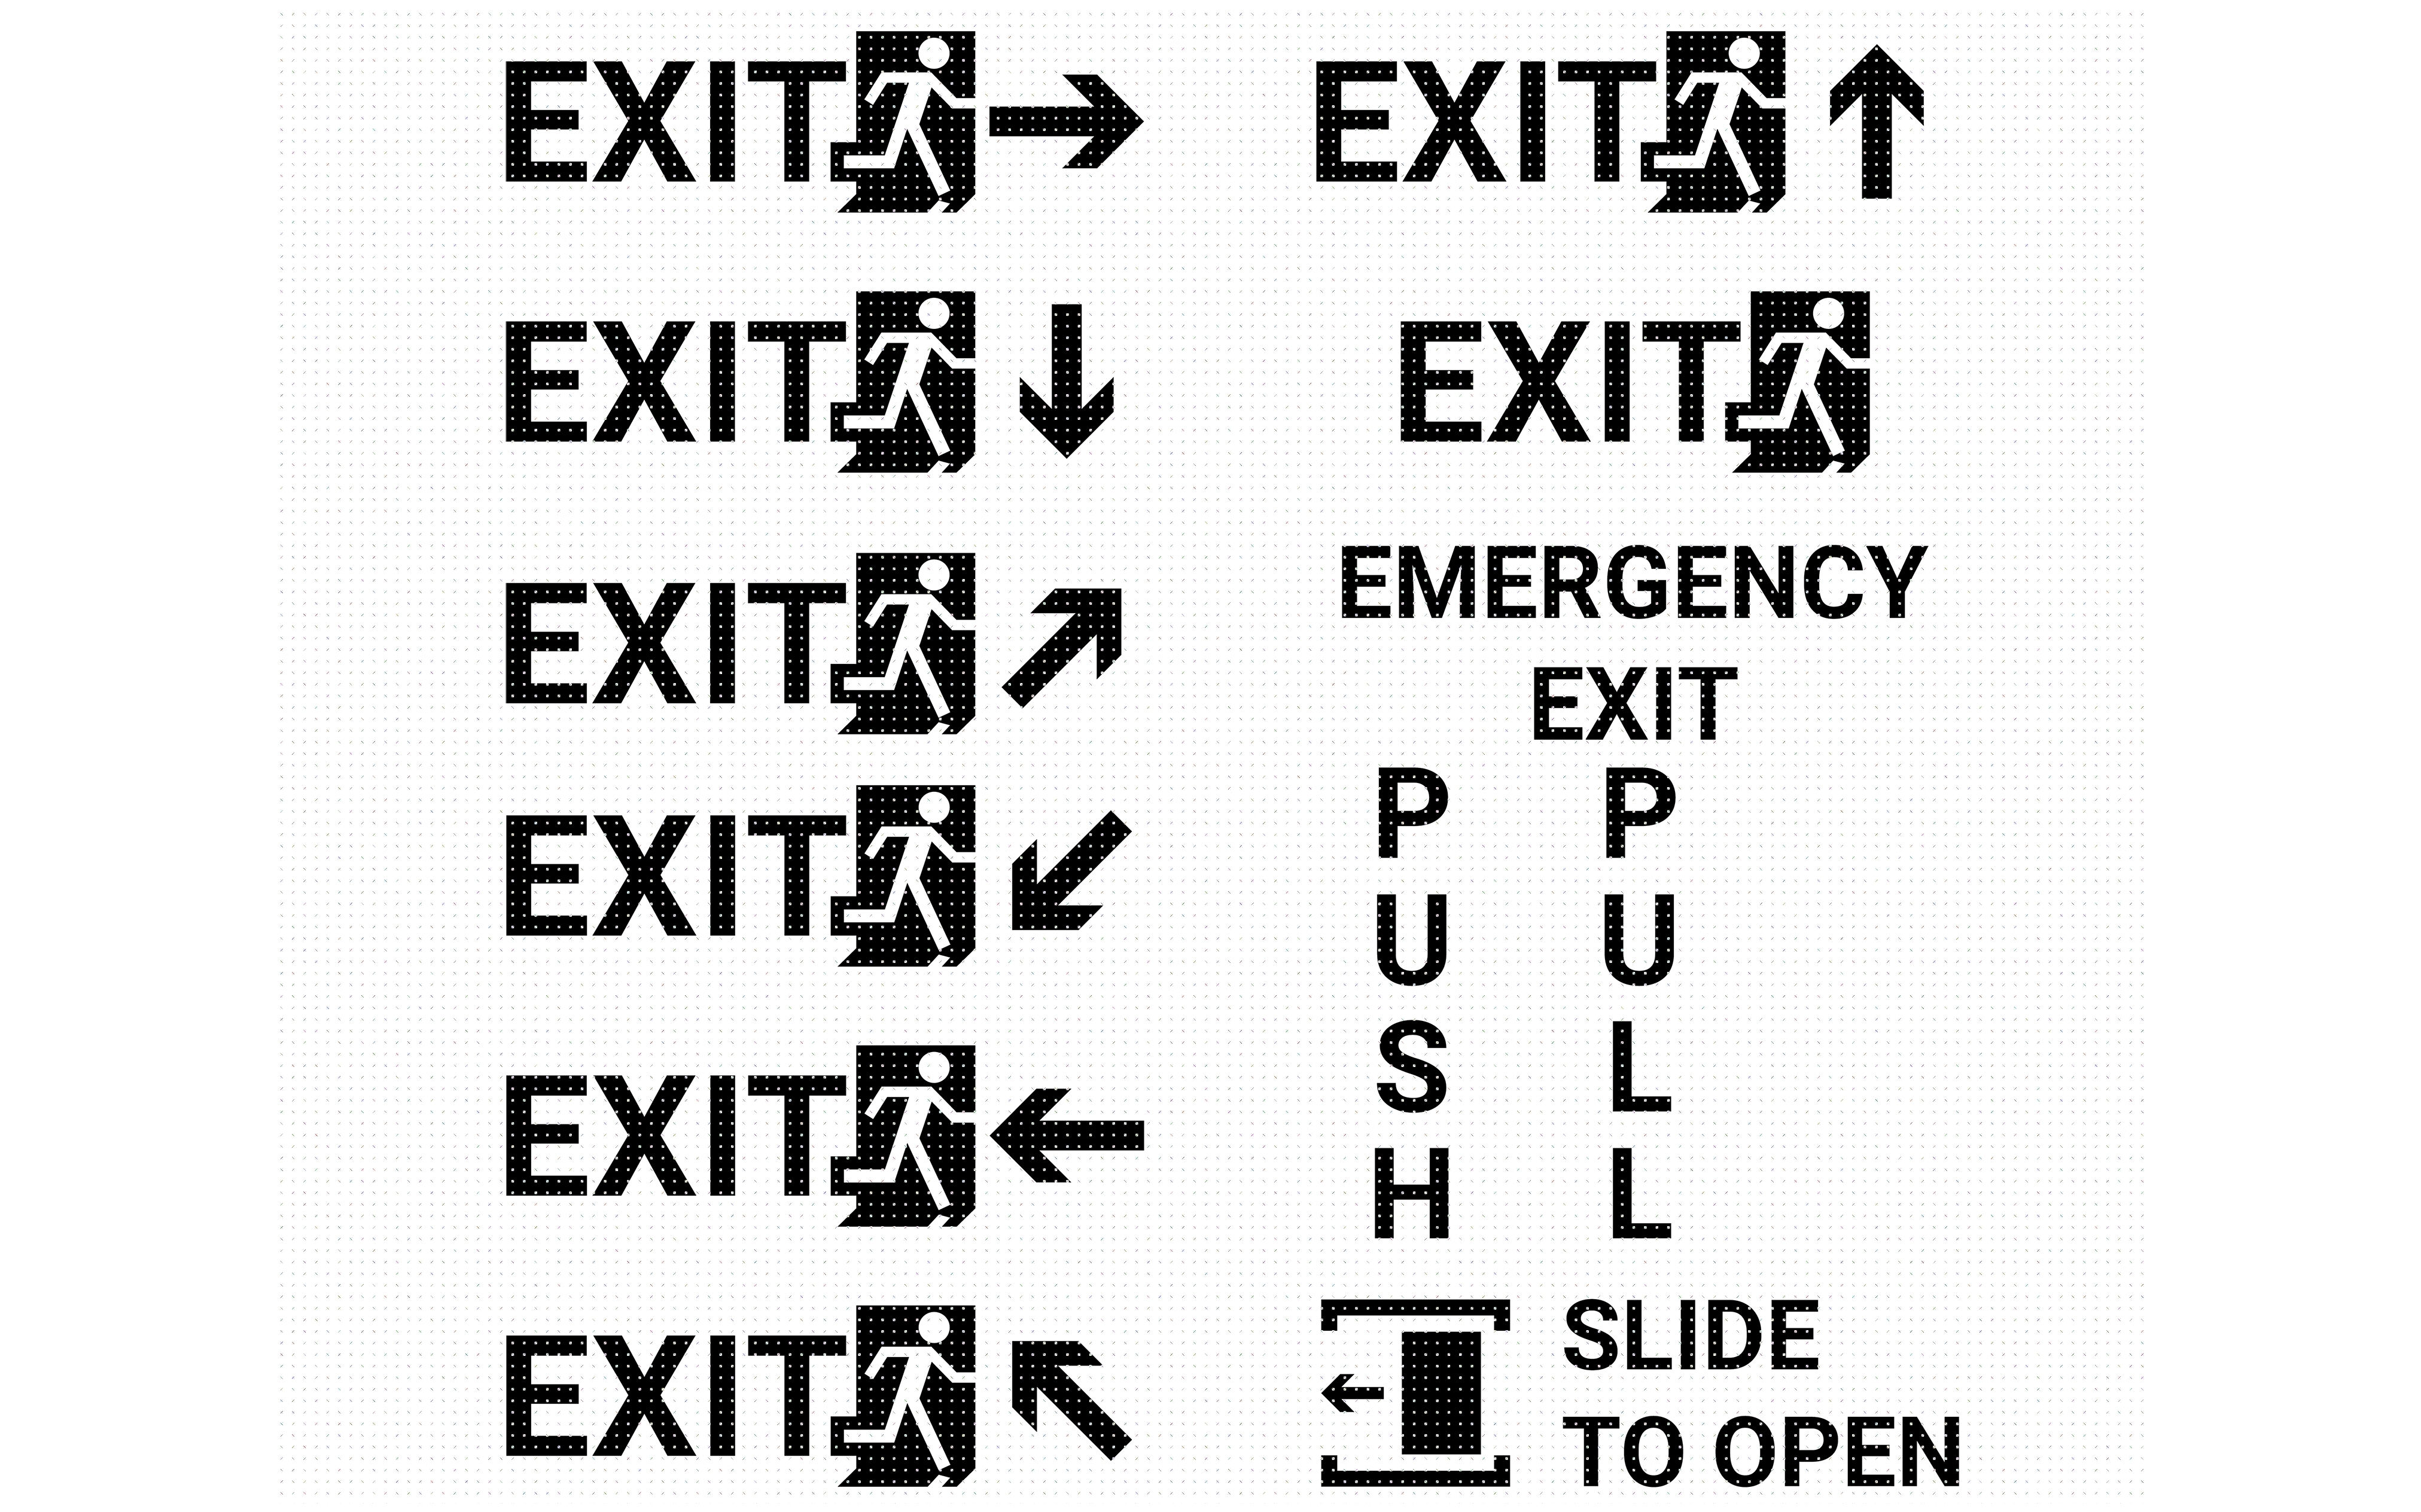 Exit Sign Emergency Poster Svg Dxf Png Eps Cricut Silhouette By Crafteroks Thehungryjpeg Com